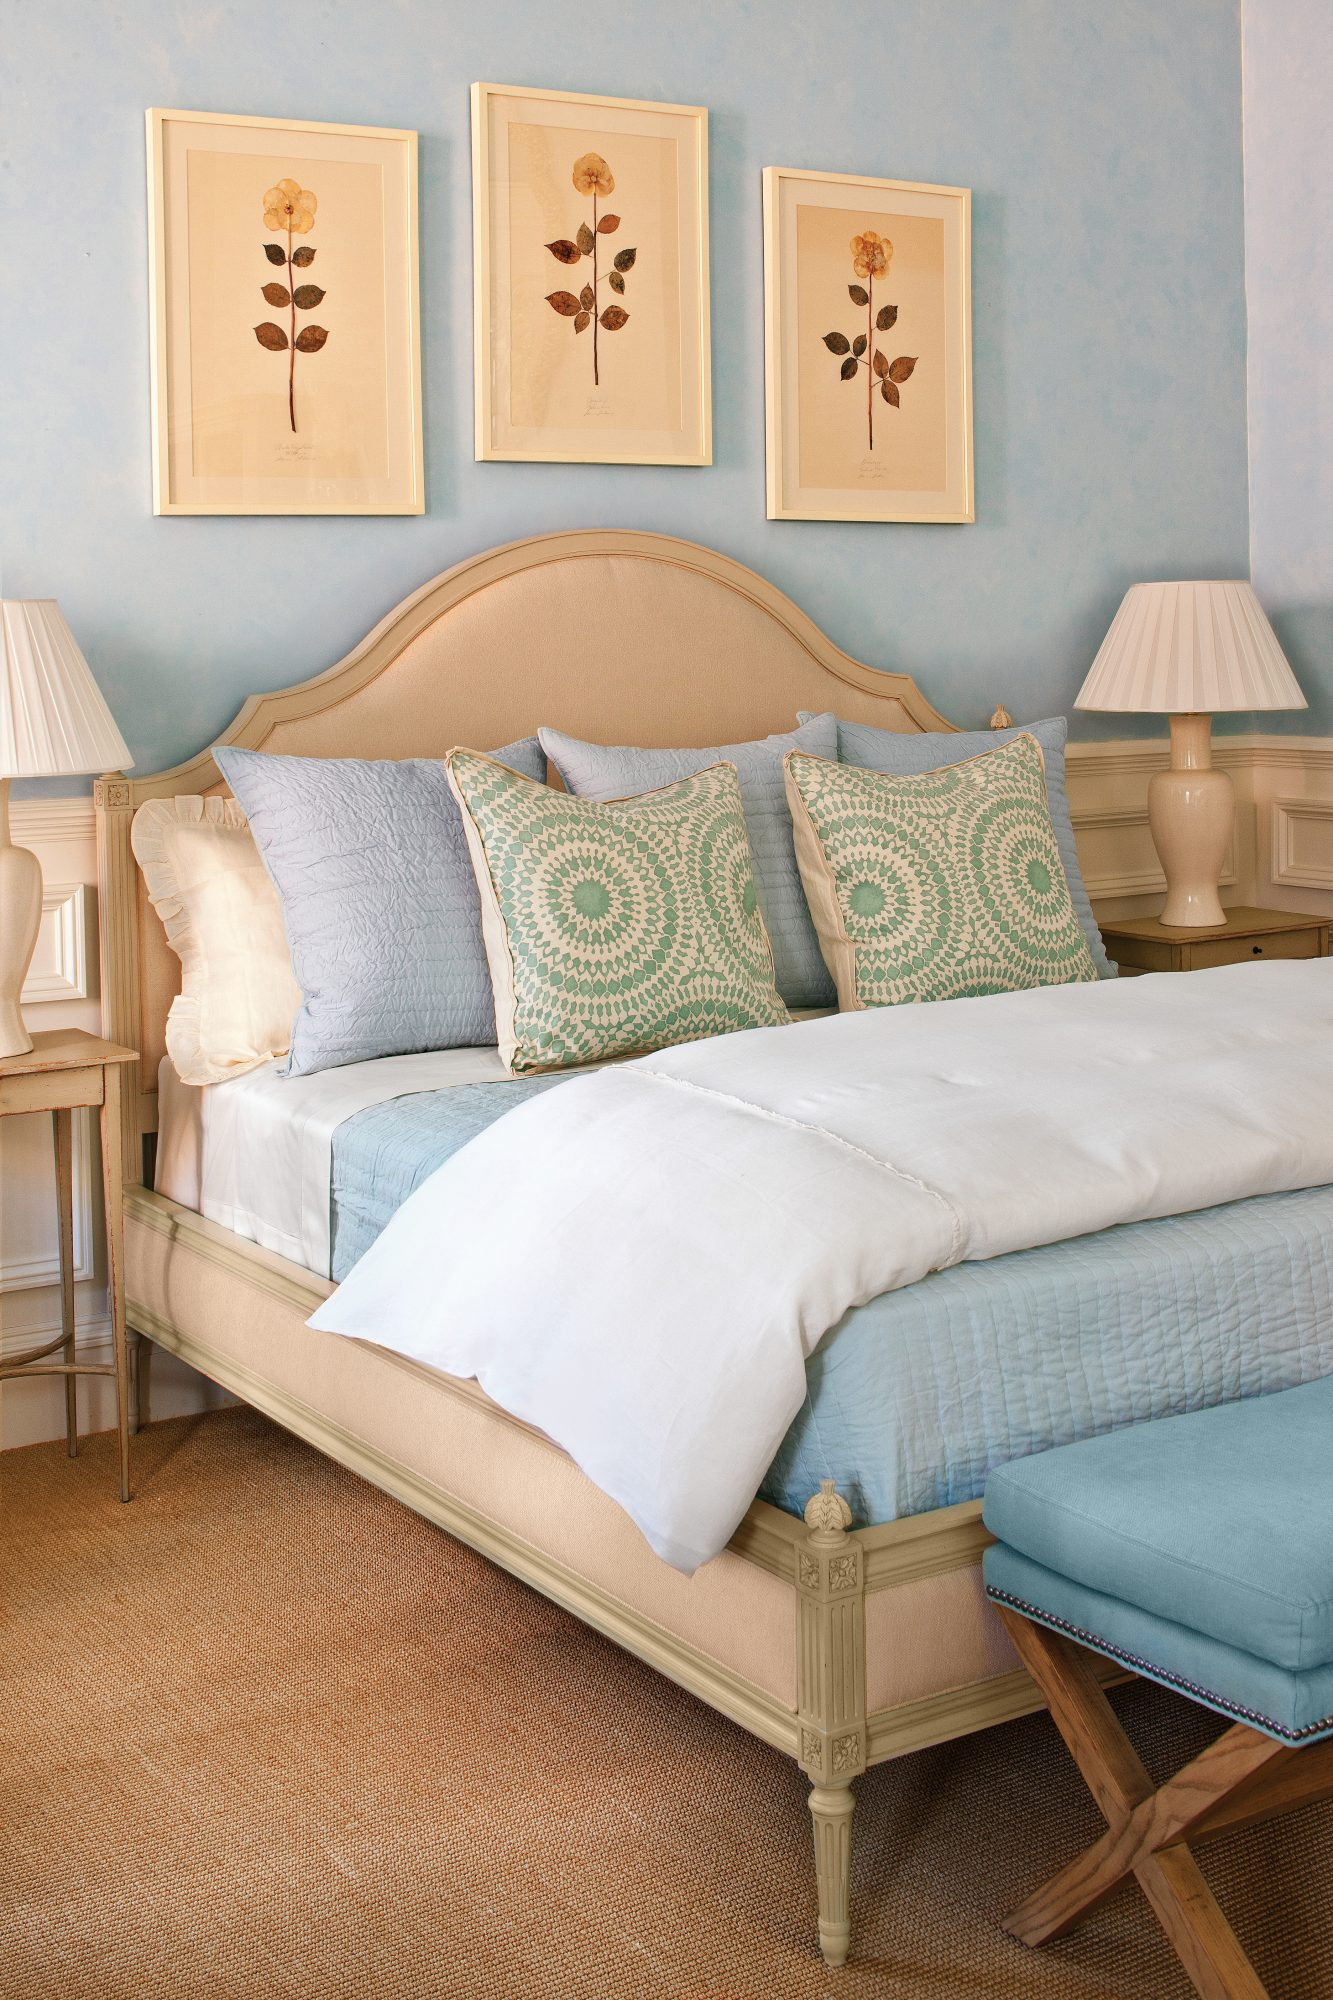 How to Make the Perfect Bed